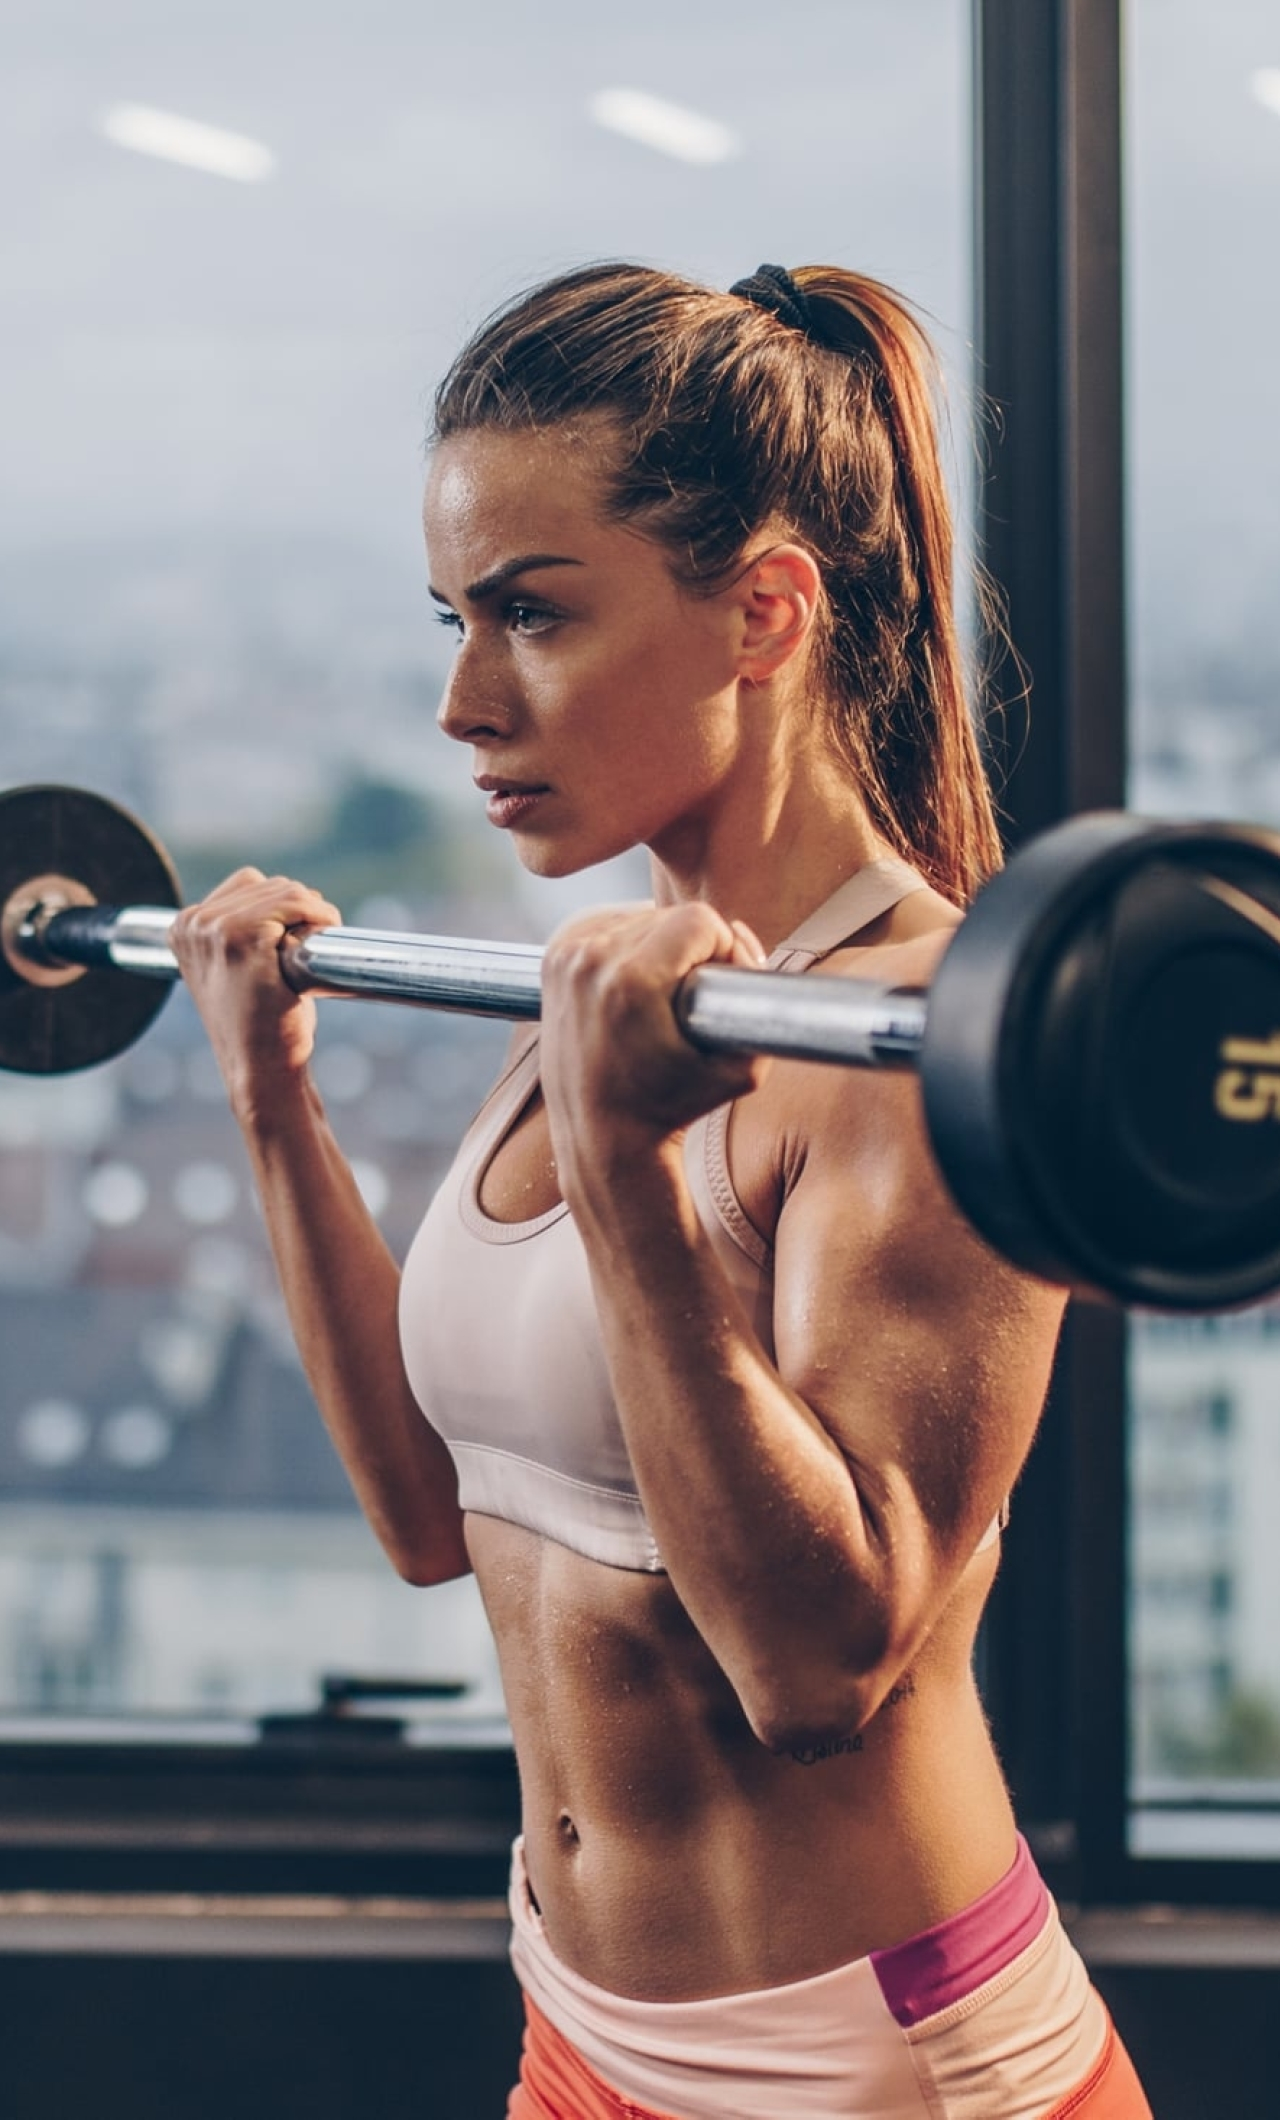 Girl Lifting Bar Wallpaper in 1280x2120 Resolution